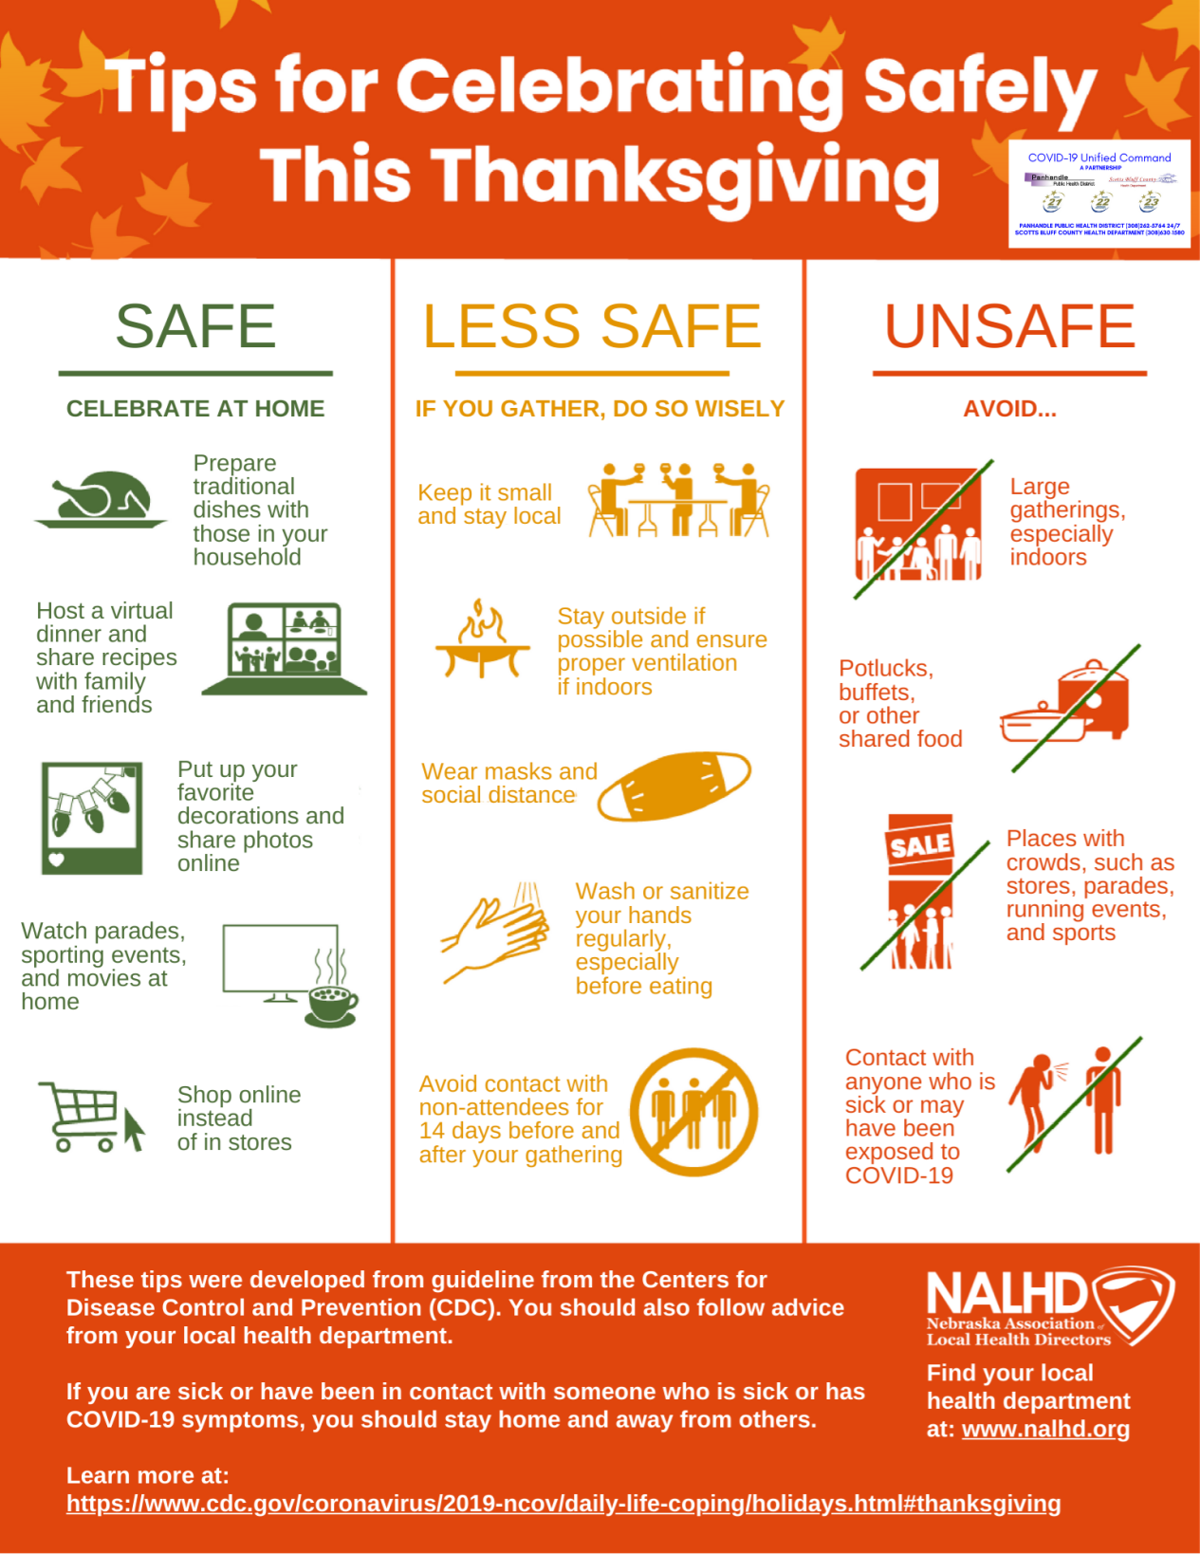 Connecting safely during the Thanksgiving Holiday